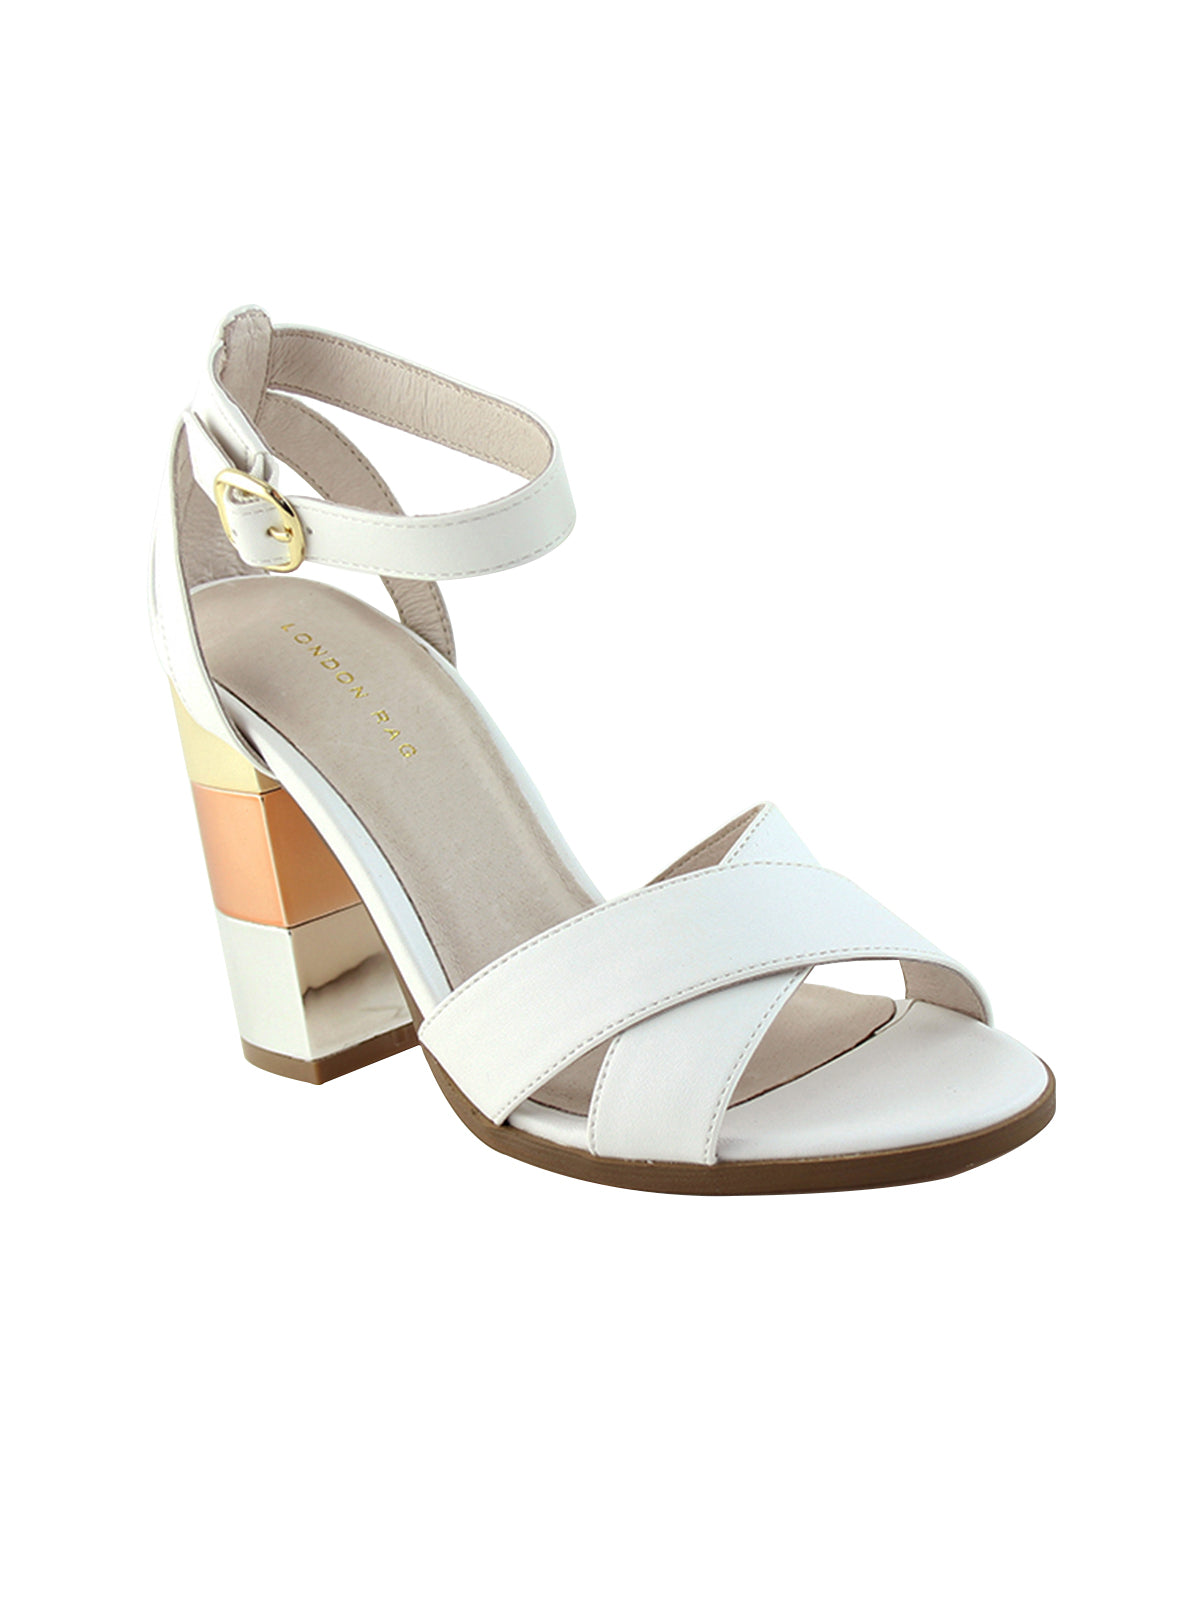 Womens White Mid- Heeled Sandals - London Rag India